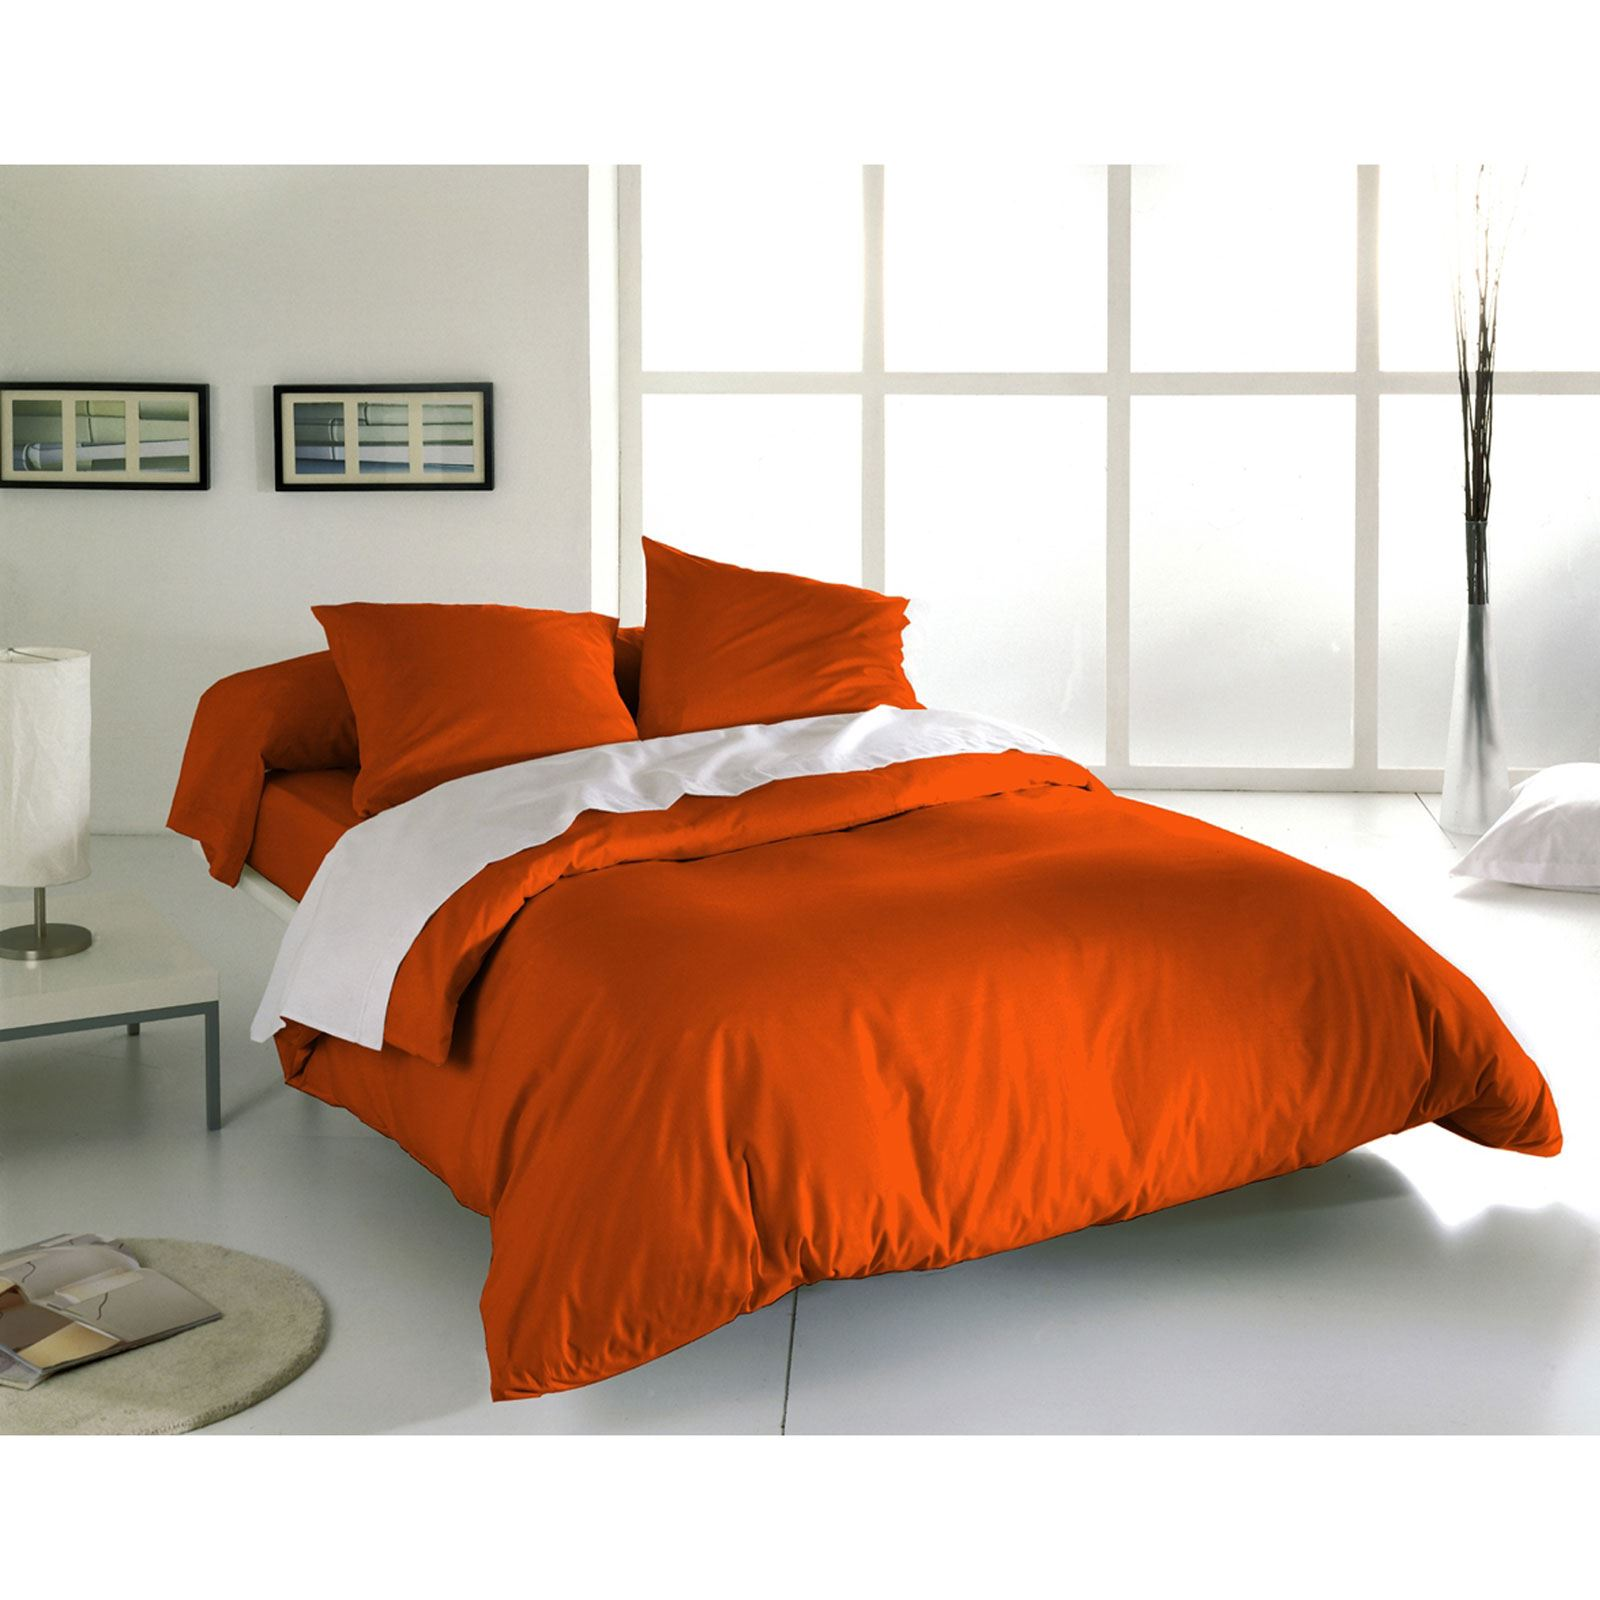 blanc d agate ensemble housse de couette et taies orange. Black Bedroom Furniture Sets. Home Design Ideas